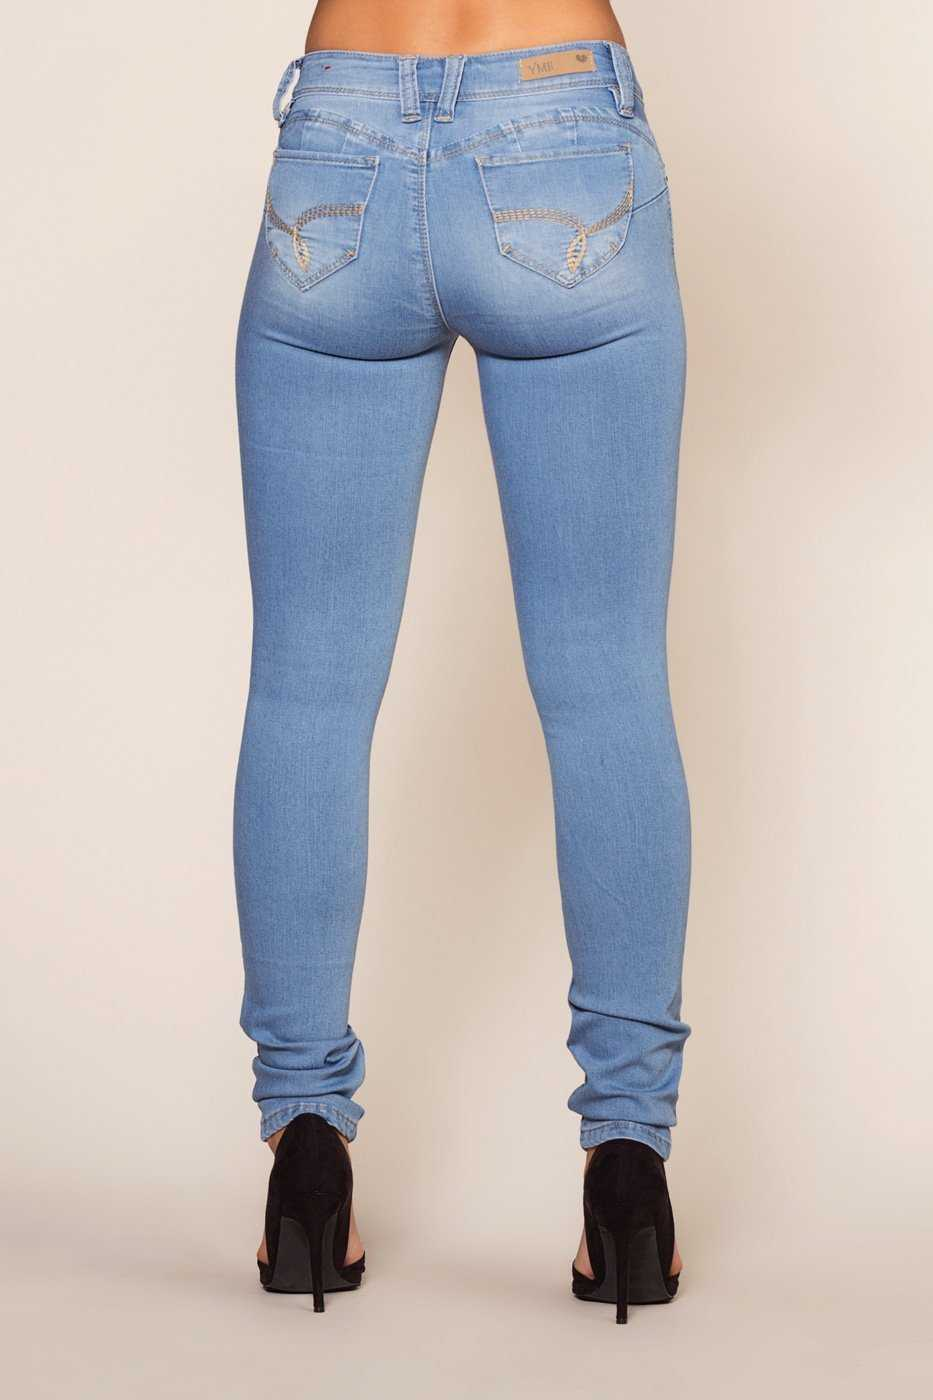 Pants - Cecily Jeans - Light Wash